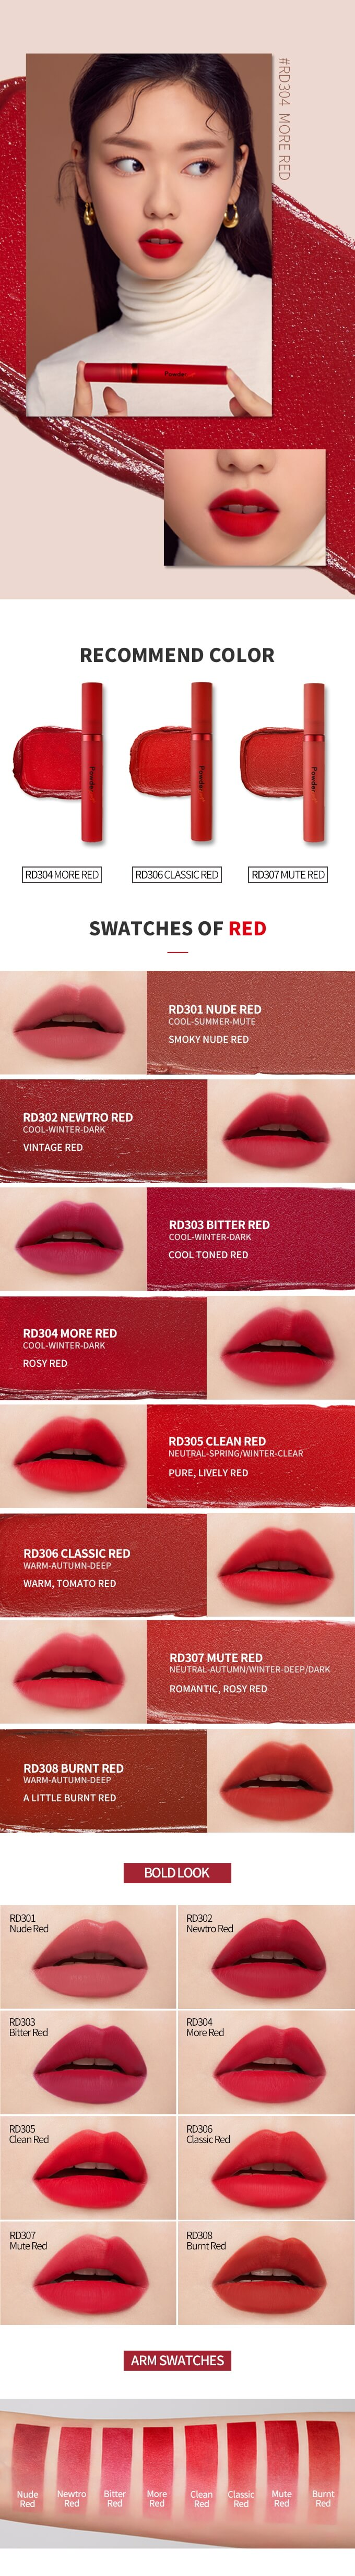 Etude House Powder Rouge Tint [#04 RD304 More Red]